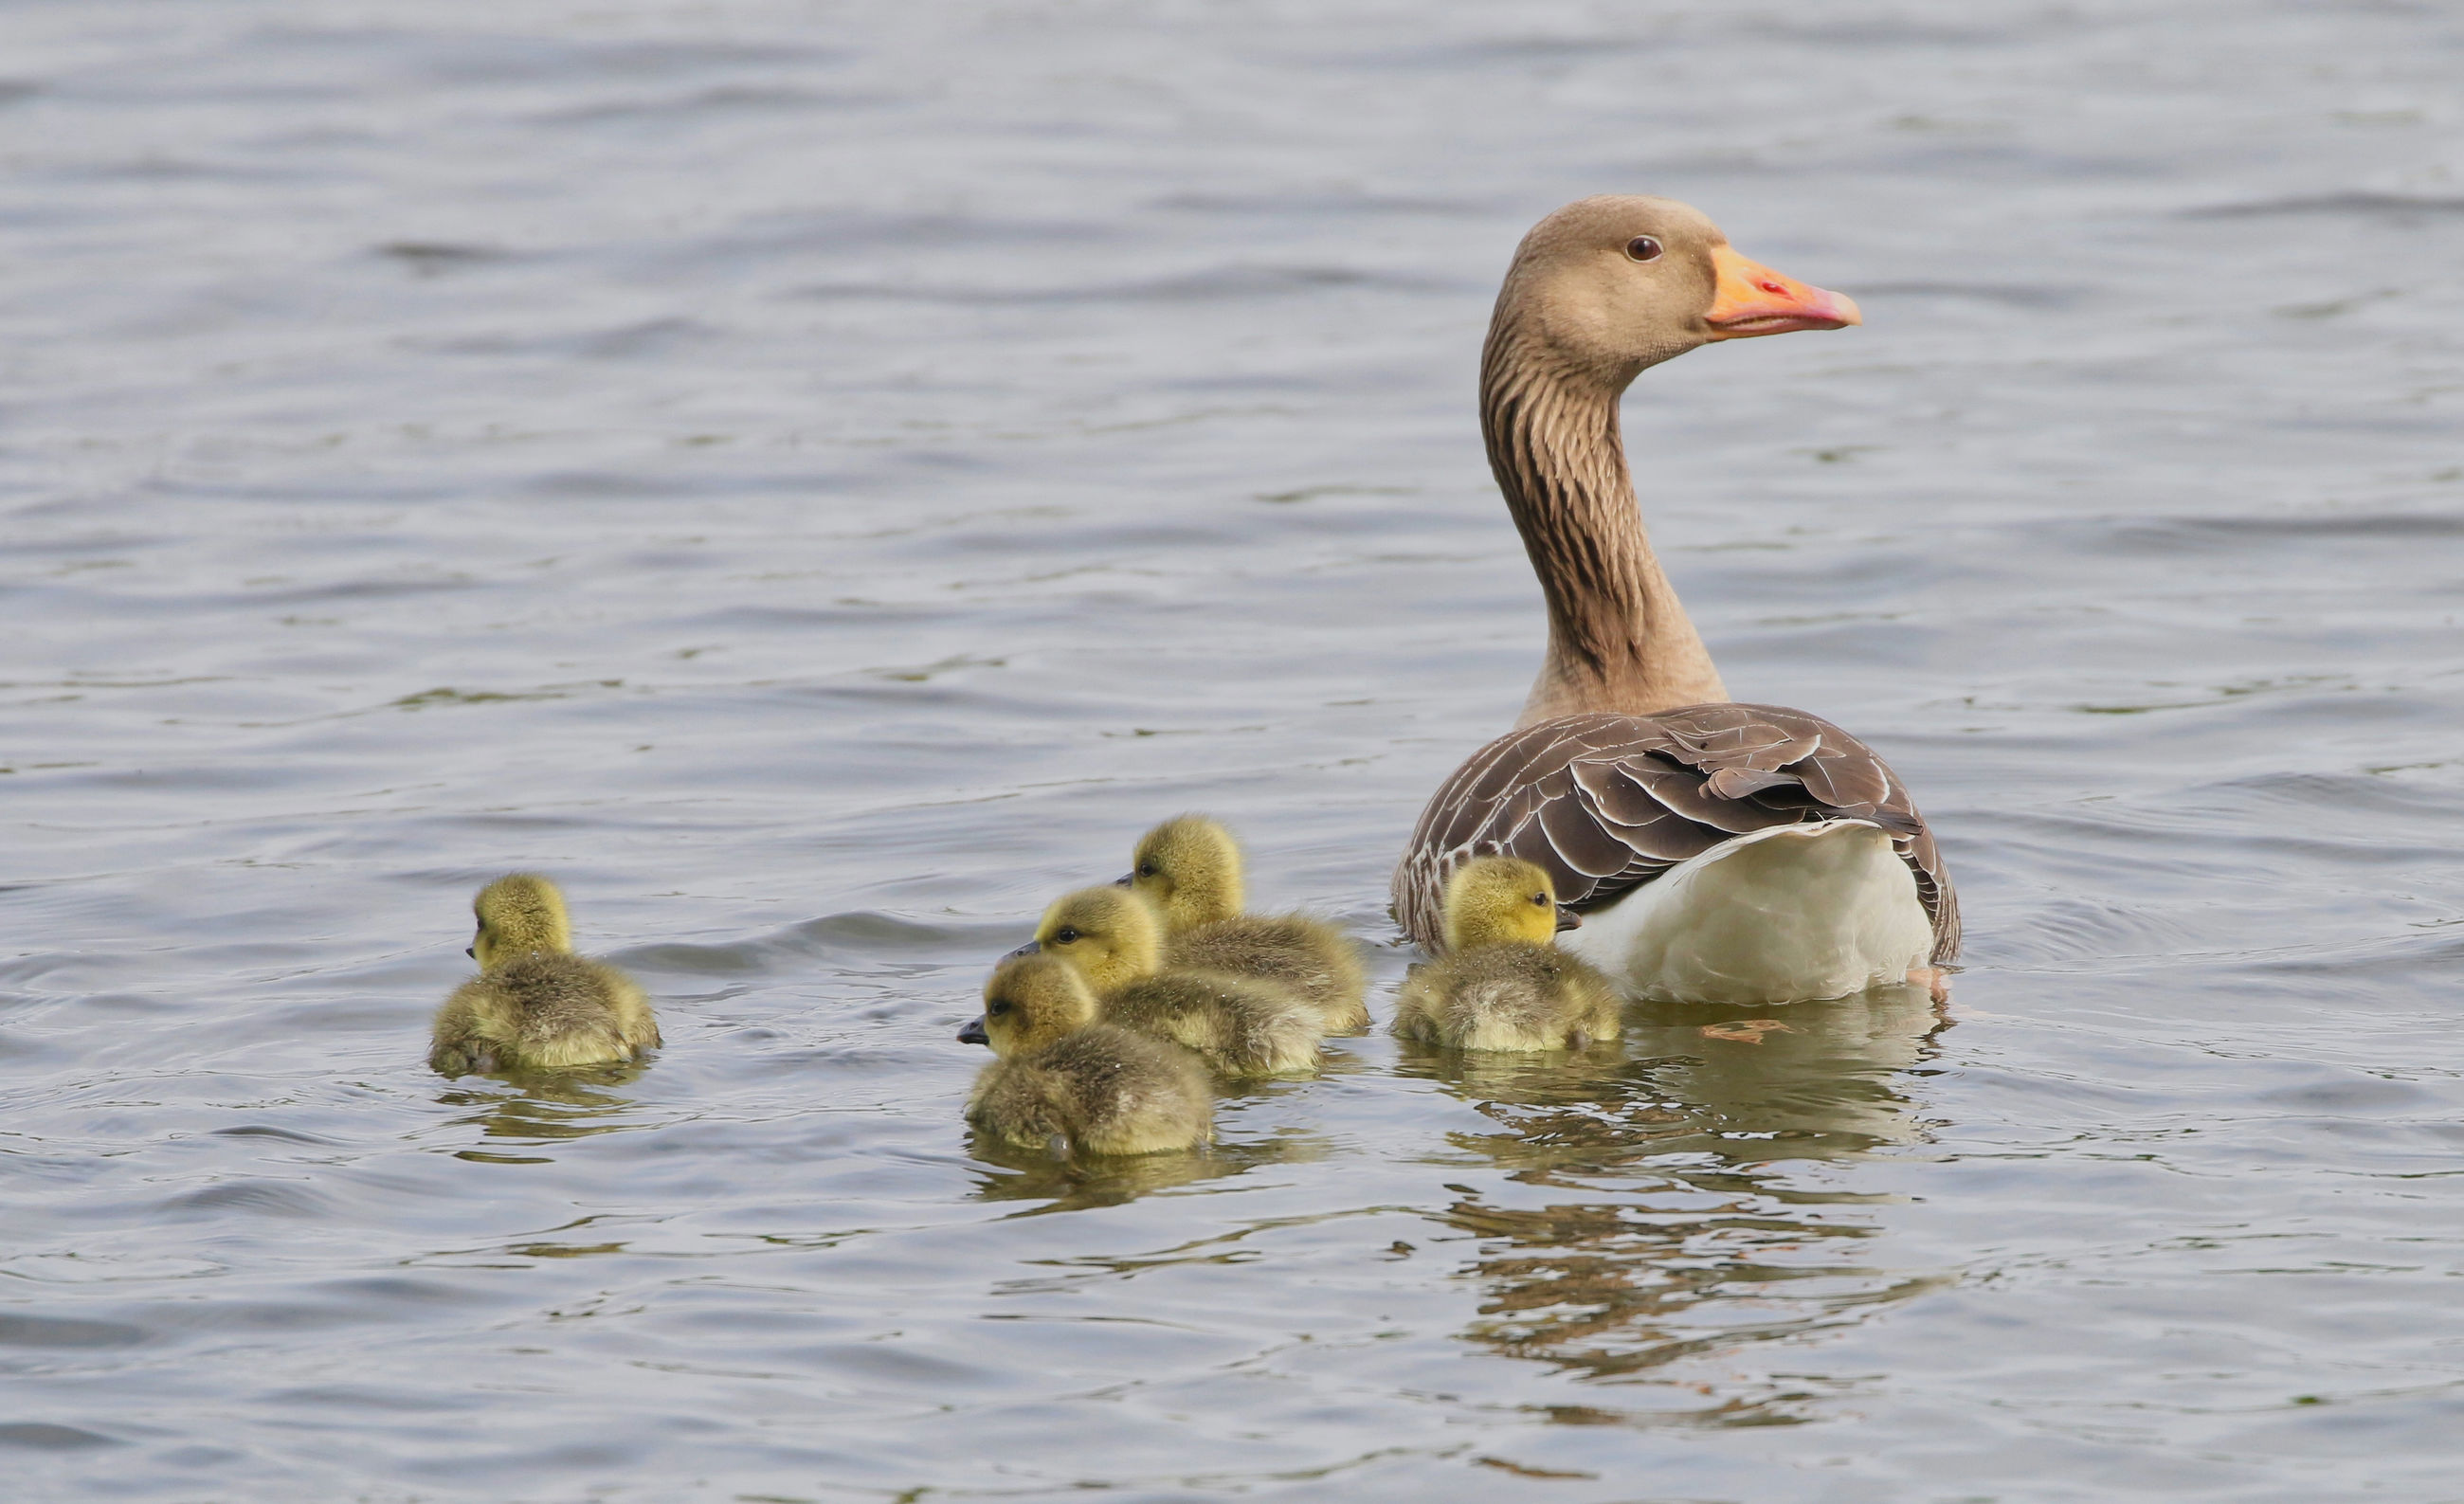 animal wildlife, animal themes, animals in the wild, bird, animal, group of animals, vertebrate, swimming, young bird, young animal, lake, waterfront, water, animal family, no people, gosling, goose, water bird, day, duck